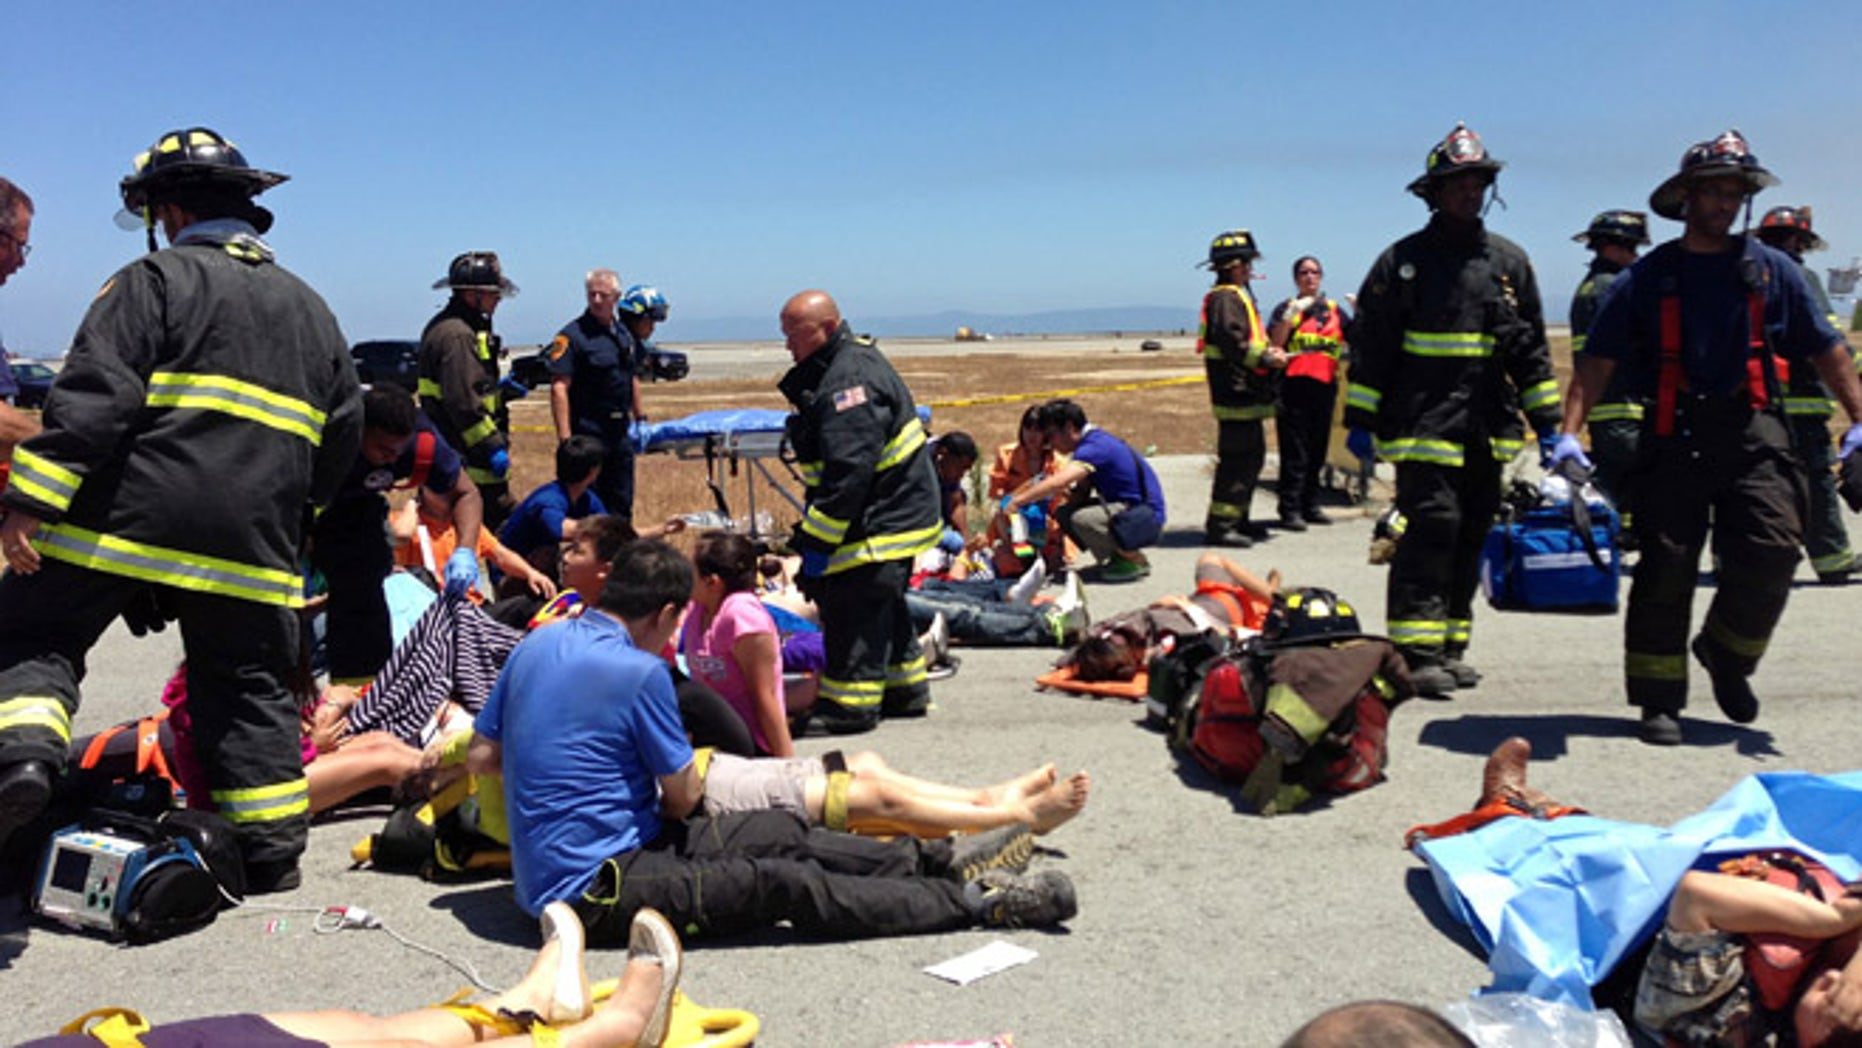 In this Saturday, July 6, 2013, photo provided by passenger Benjamin Levy, passengers from Asiana Airlines flight 214 are treated by first responders on the tarmac just moments after the plane crashed at the San Francisco International Airport in San Francisco. The flight crashed upon landing, and two of the 307 passengers aboard were killed.